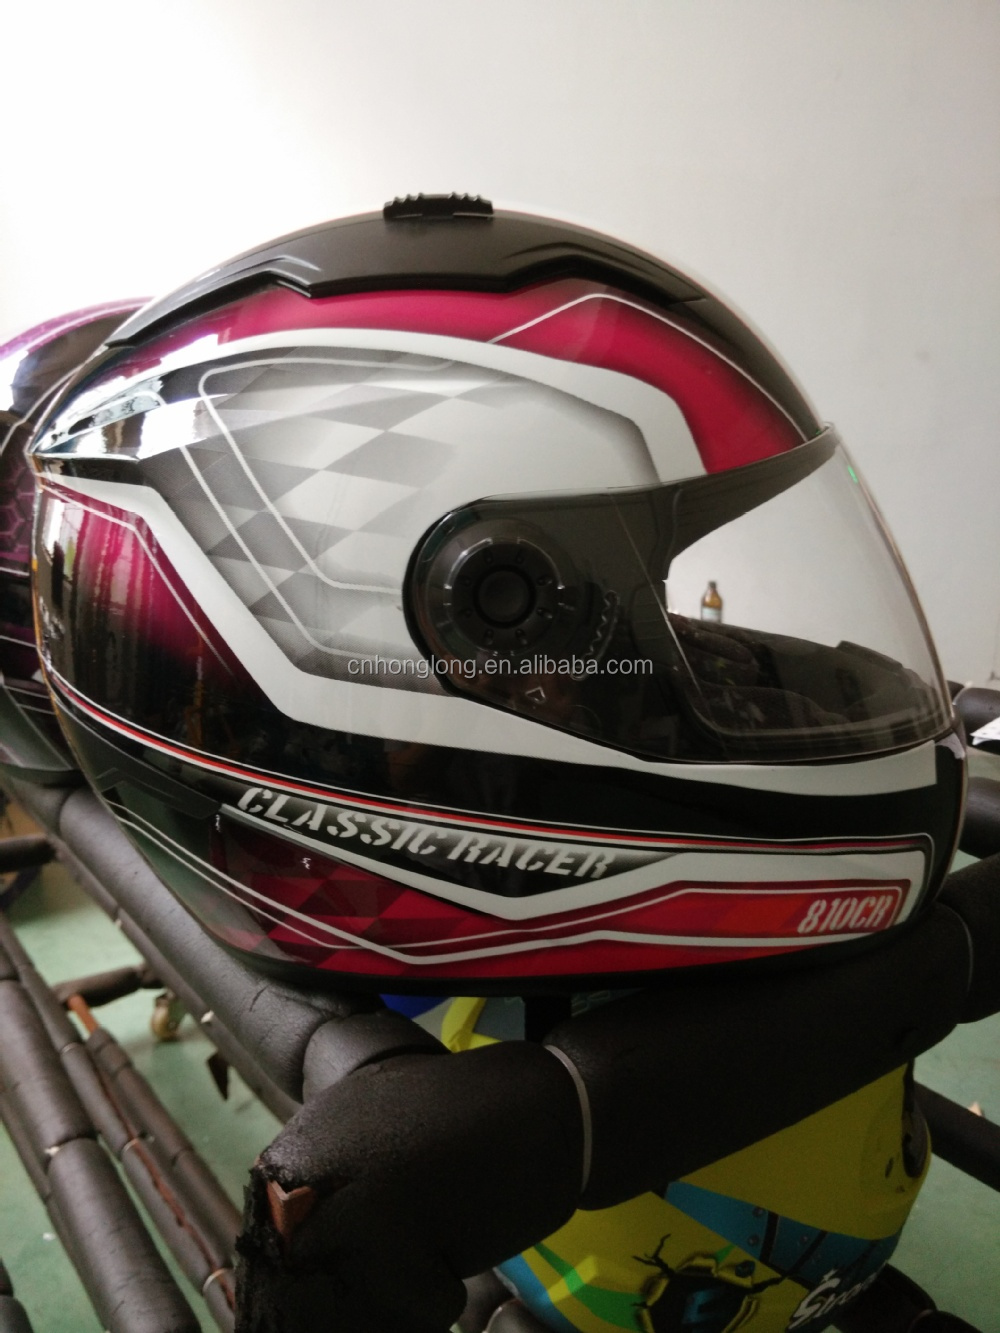 ECE R22.05 Full face helmet,Made in China,Top quality helmet for Adults,Safety Protection helmet